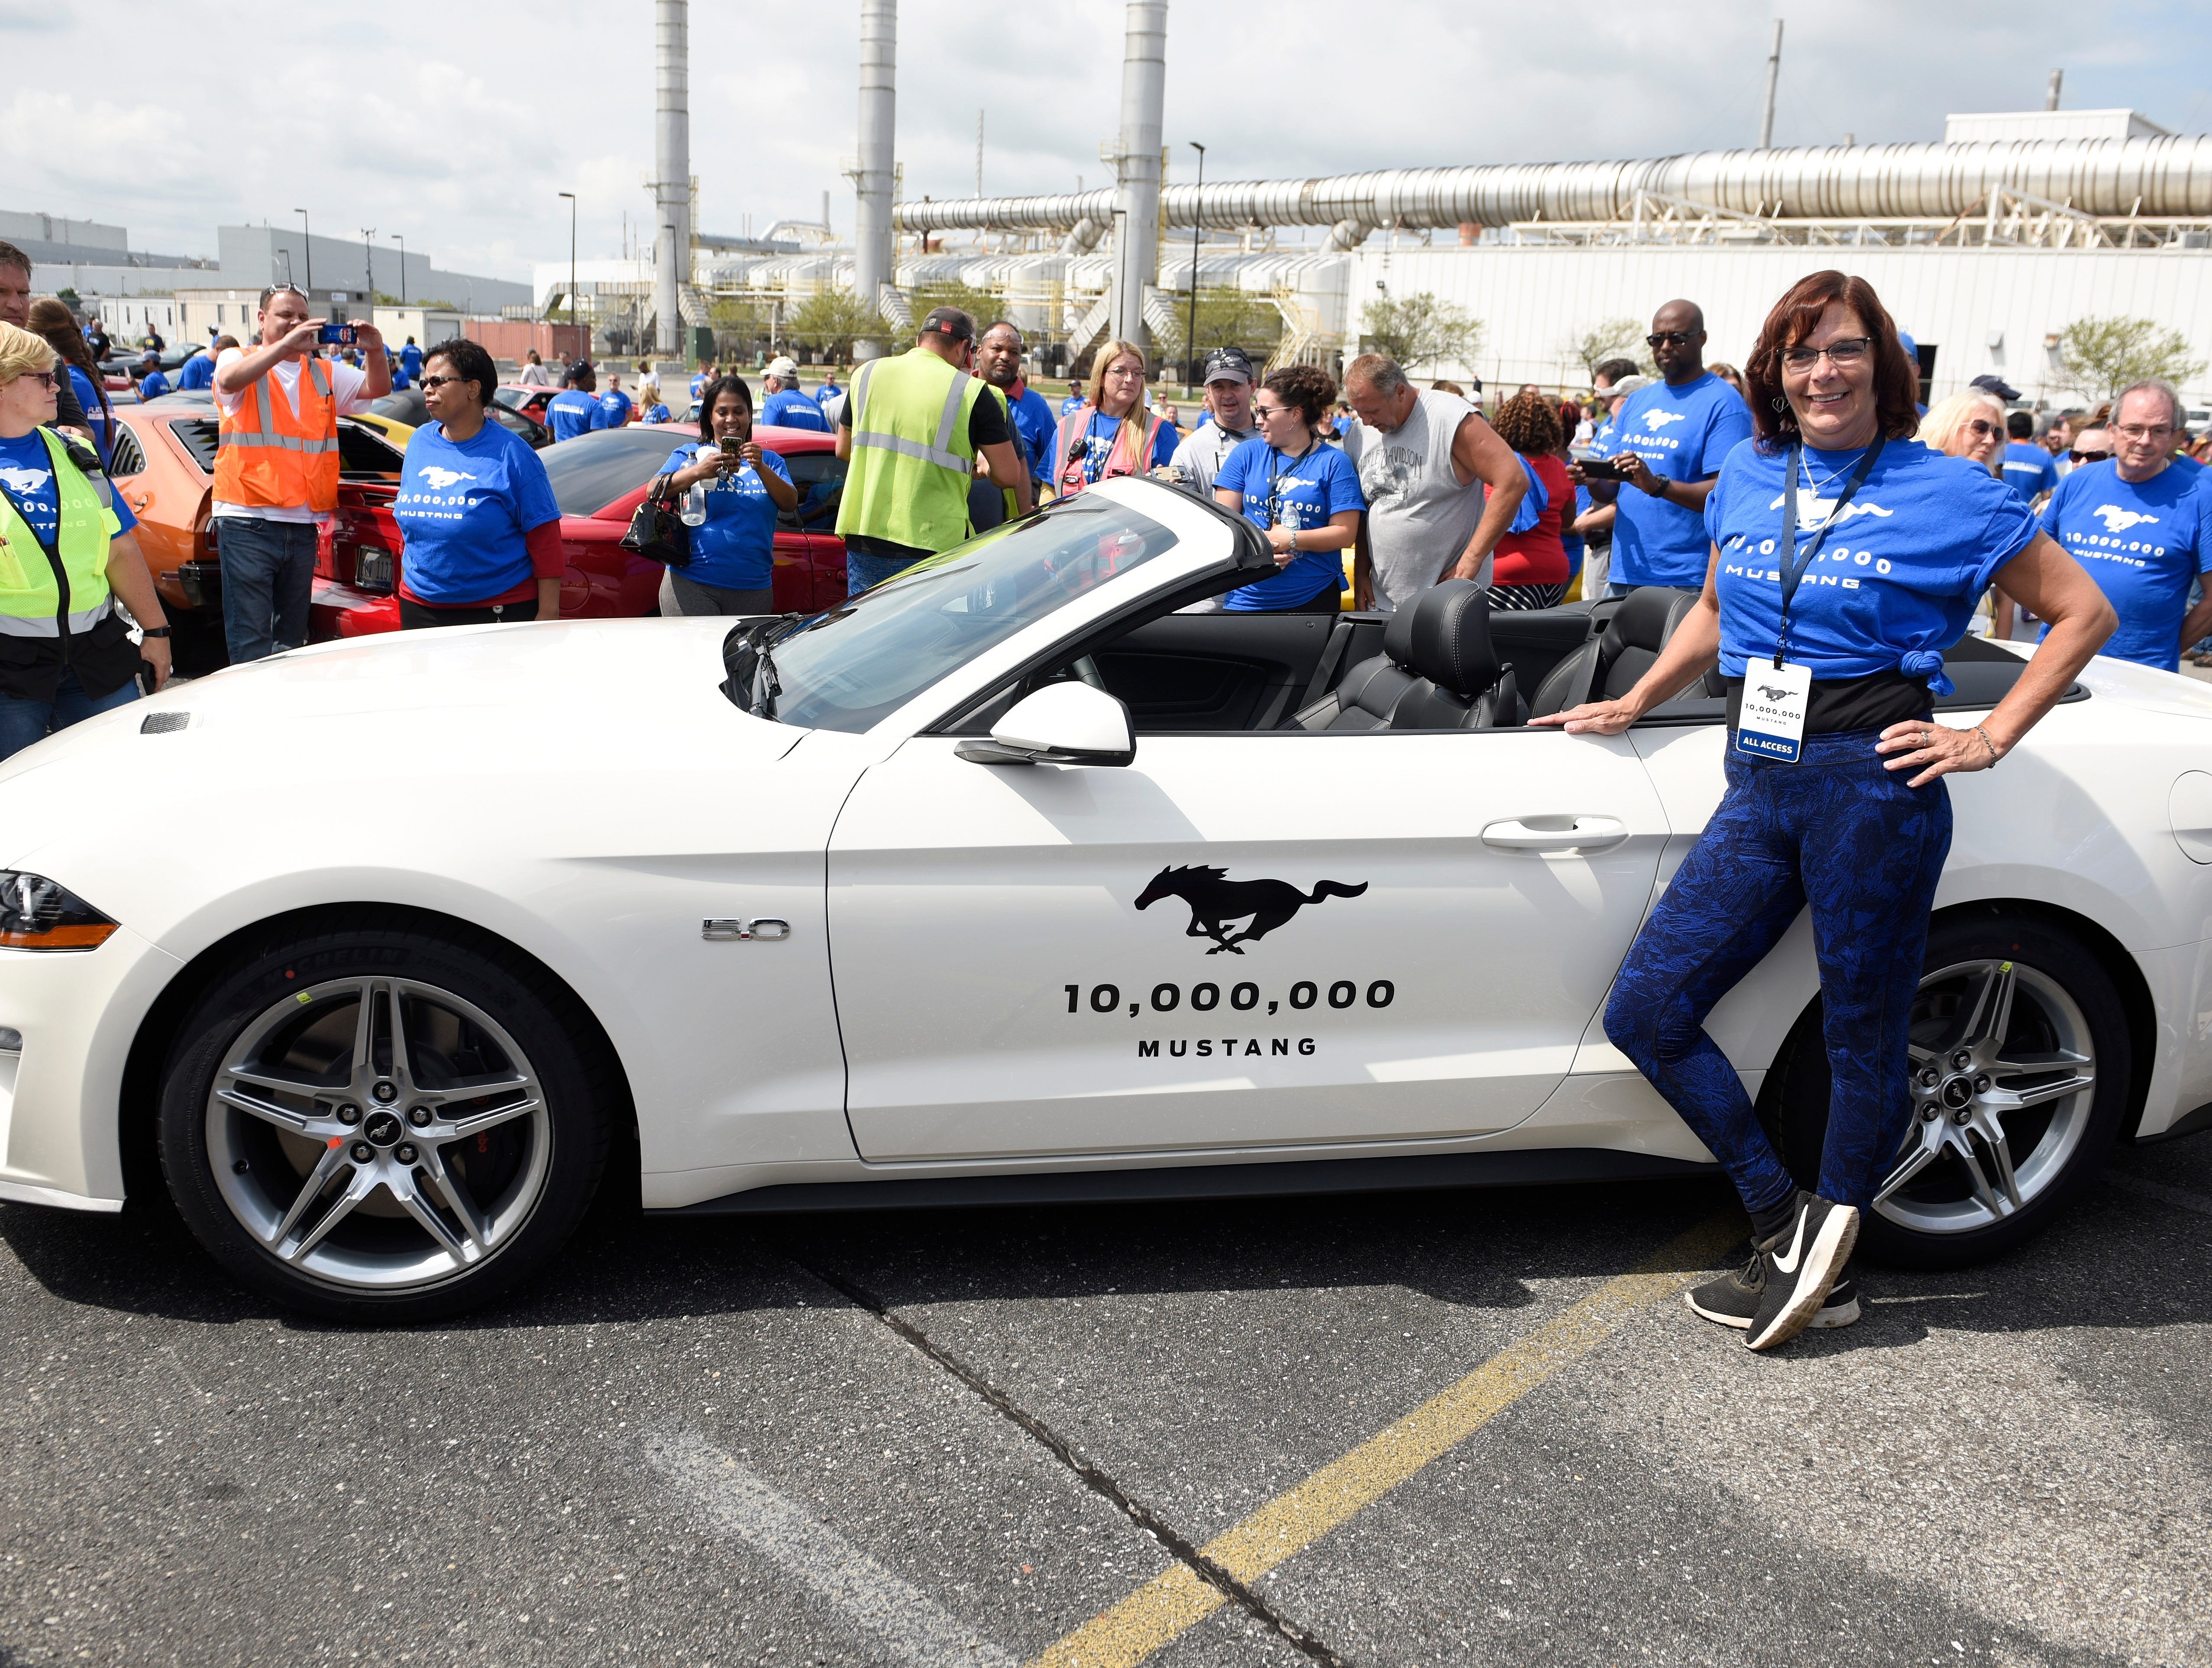 30-year plant employee Susan Spaulding poses with the 10 millionth Mustang during the event.